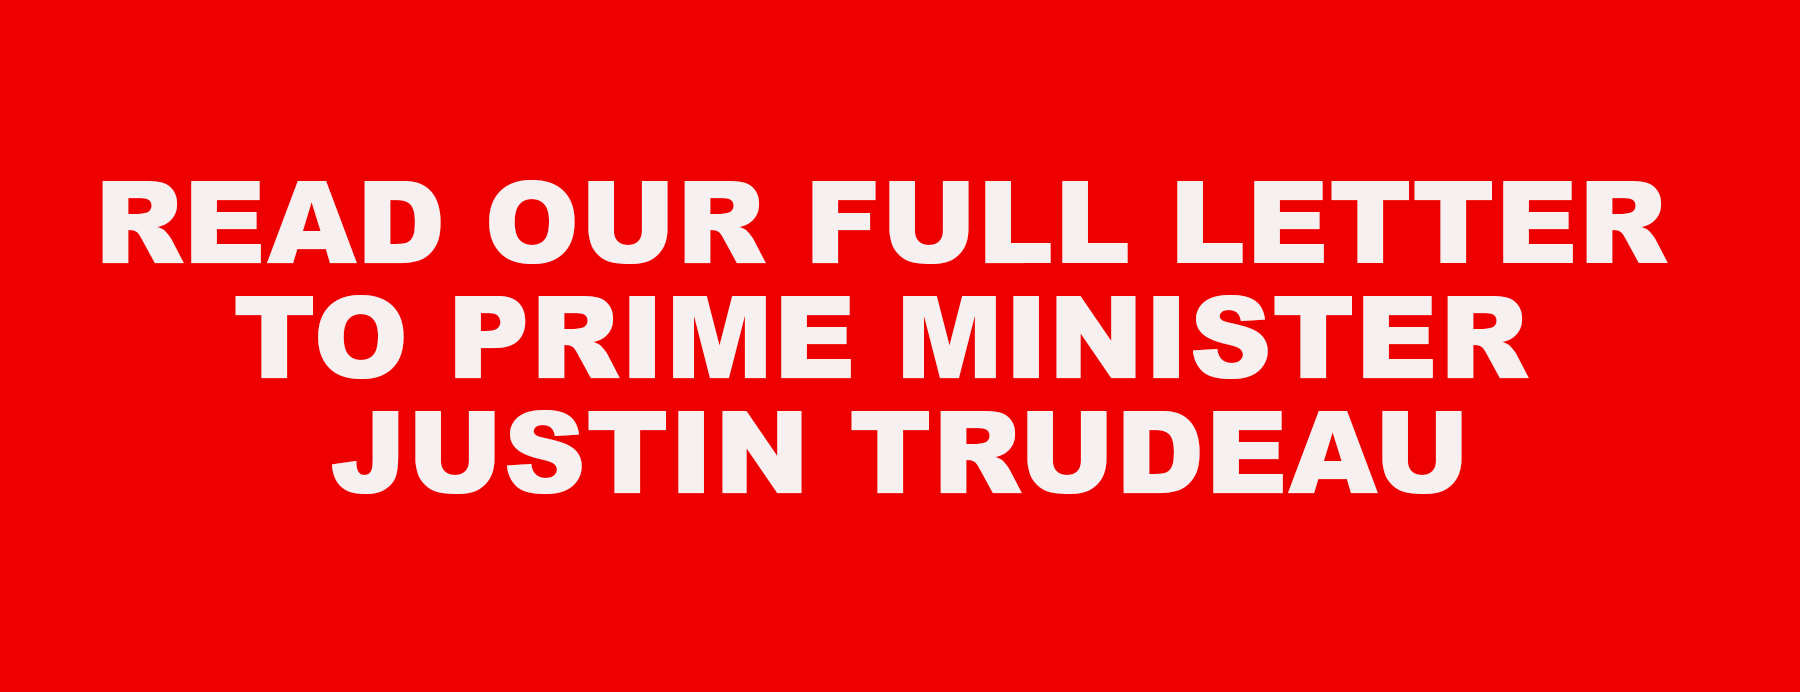 Read our message to Prime Minister Justin Trudeau